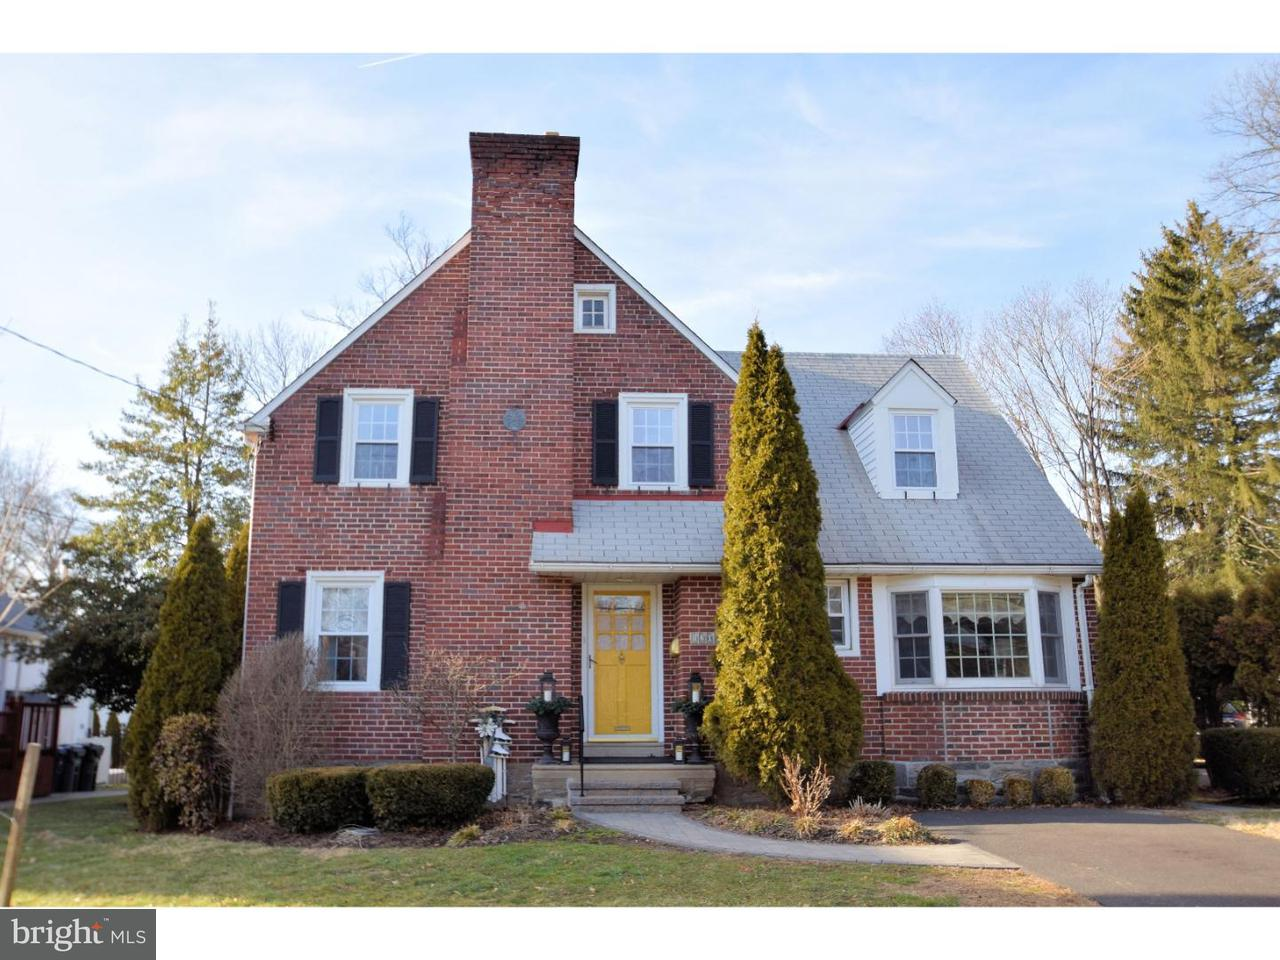 Single Family Home for Sale at 1208 JERICHO Road Abington, Pennsylvania 19001 United States